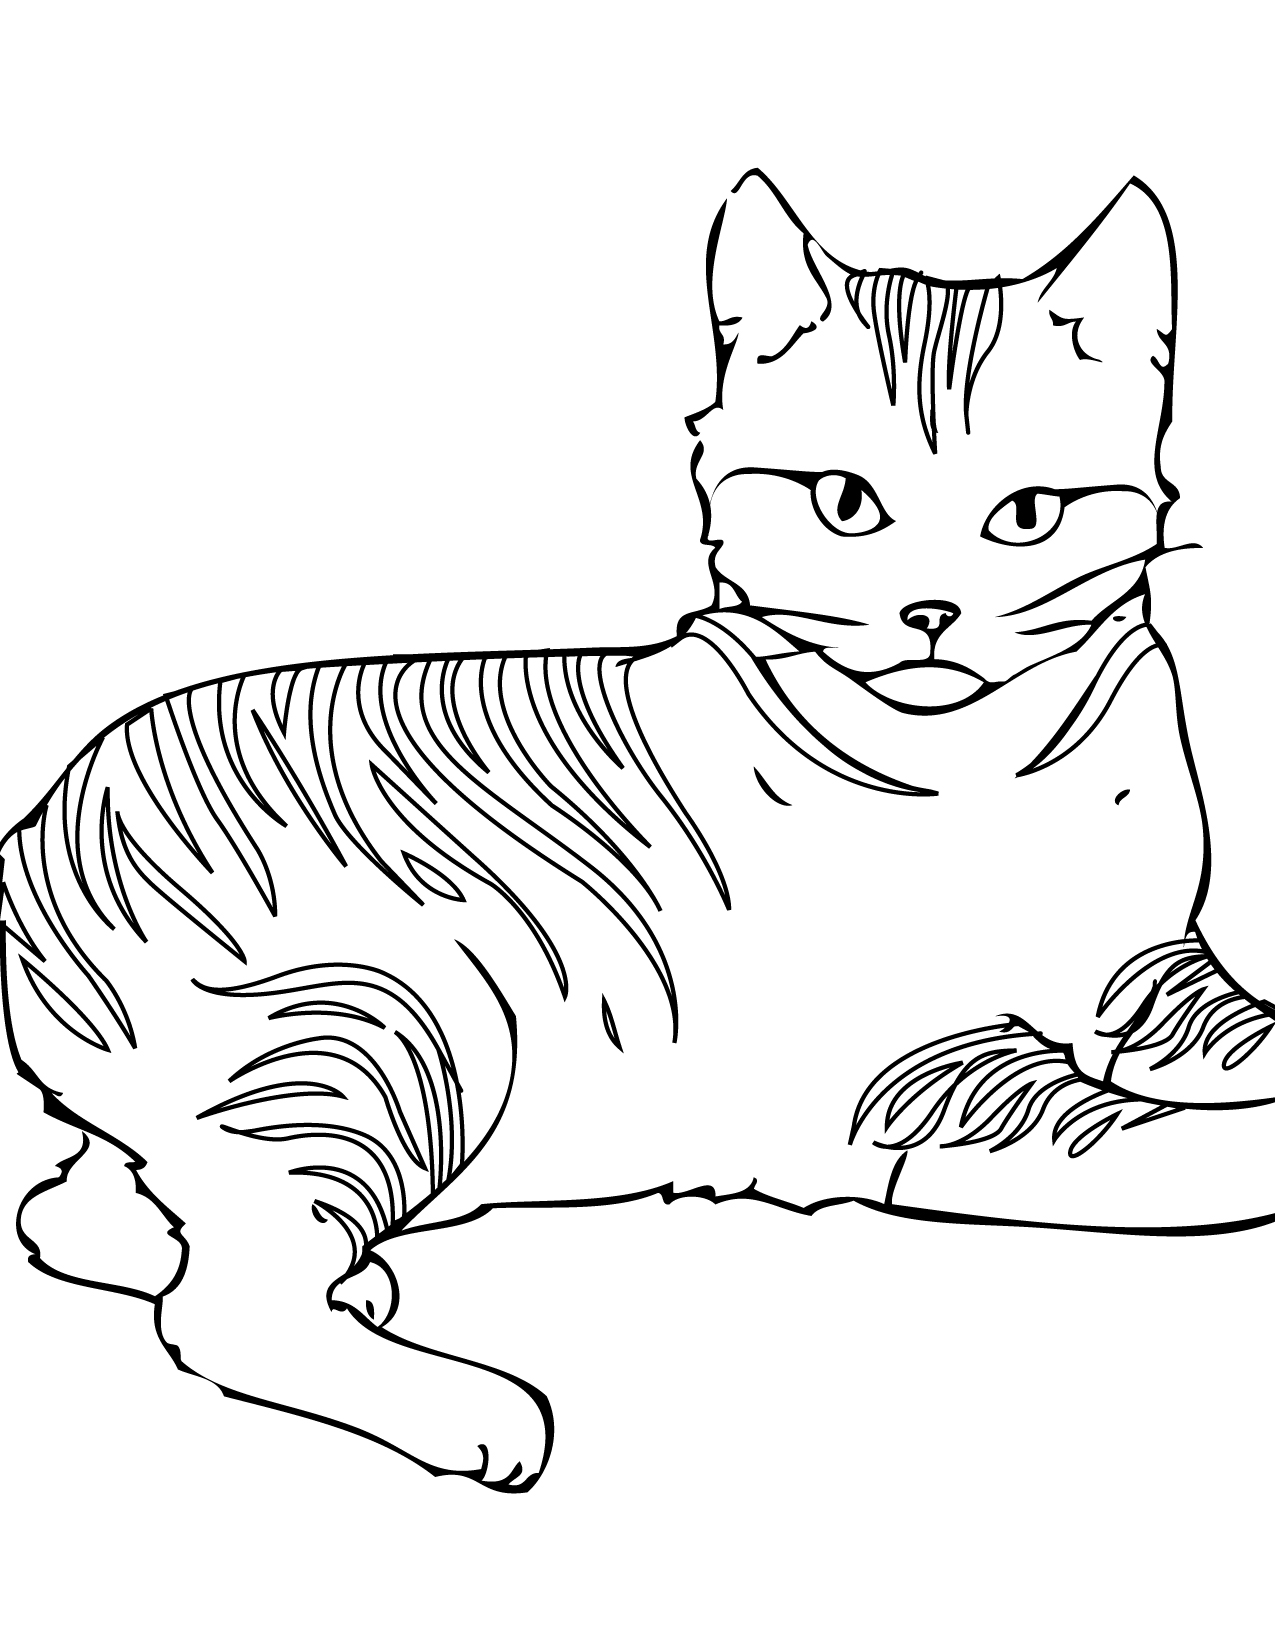 1275x1650 Easy Pictures Of Cats To Color Online Coloring Pages Page